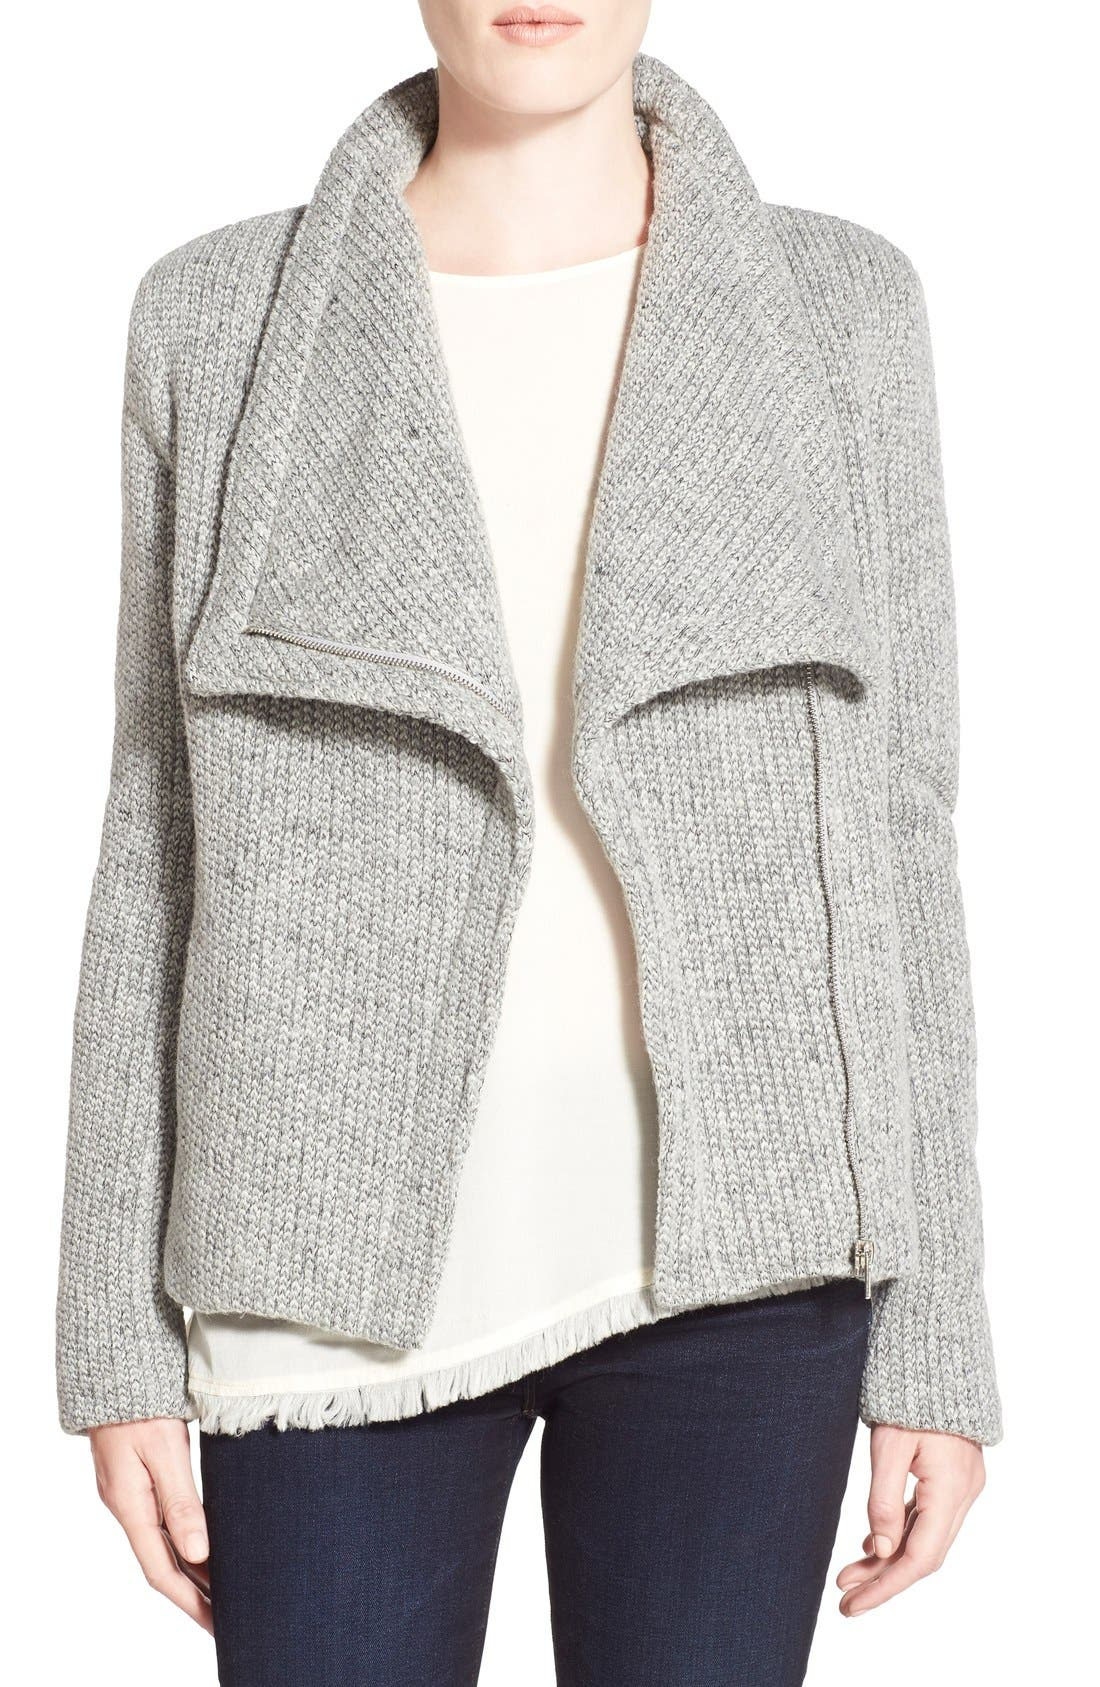 Alternate Image 1 Selected - cupcakes and cashmere 'Rue' Drape Collar Knit Jacket